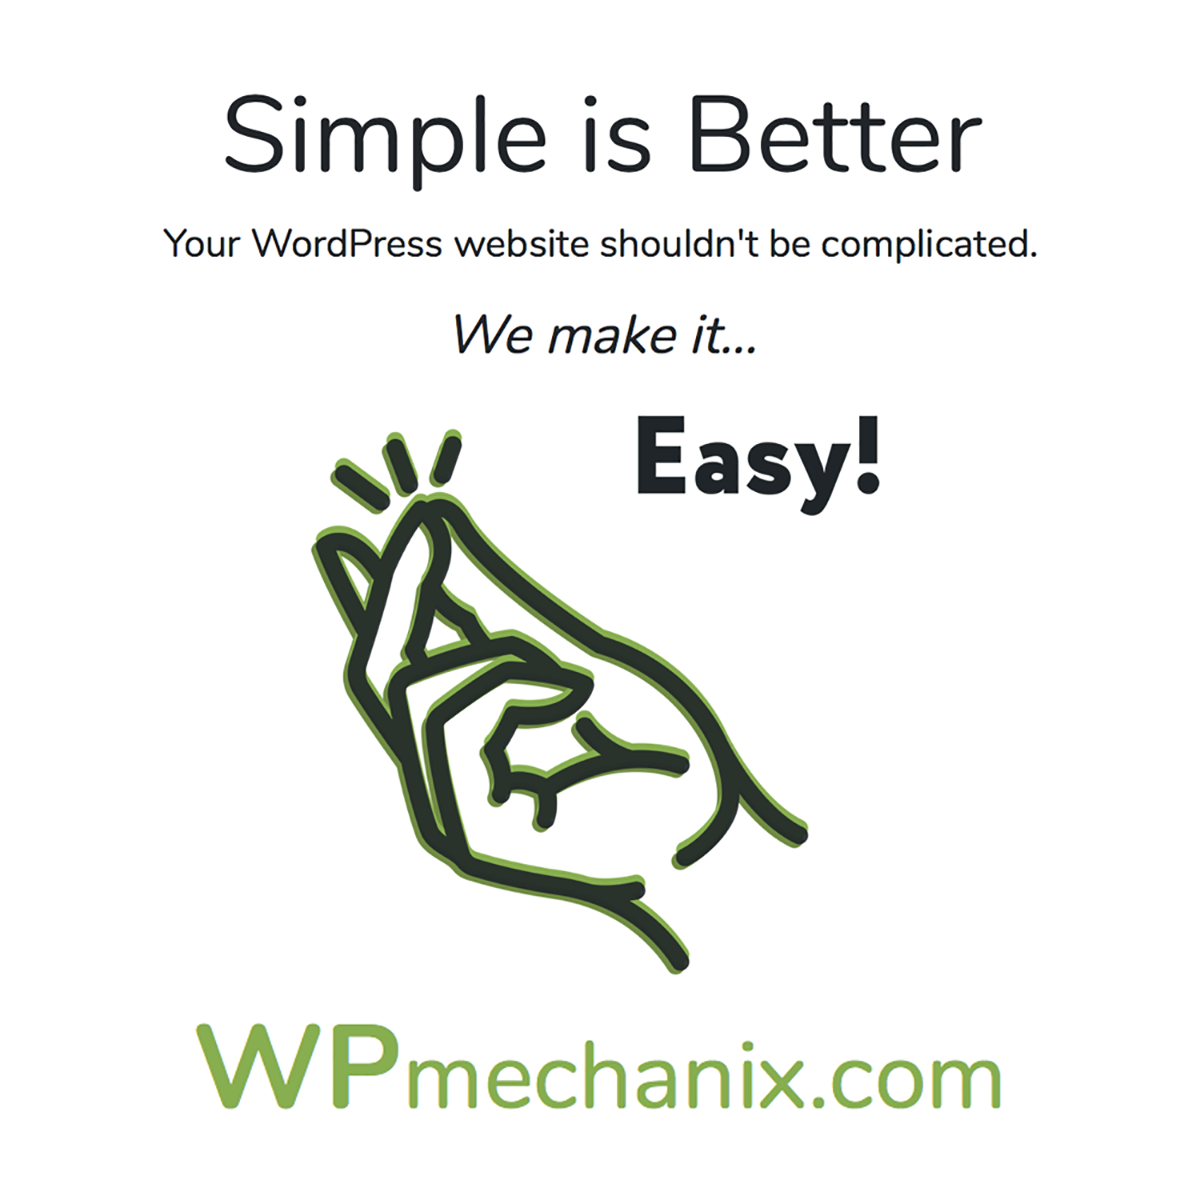 Managed WordPress Services by WPmechanix.com